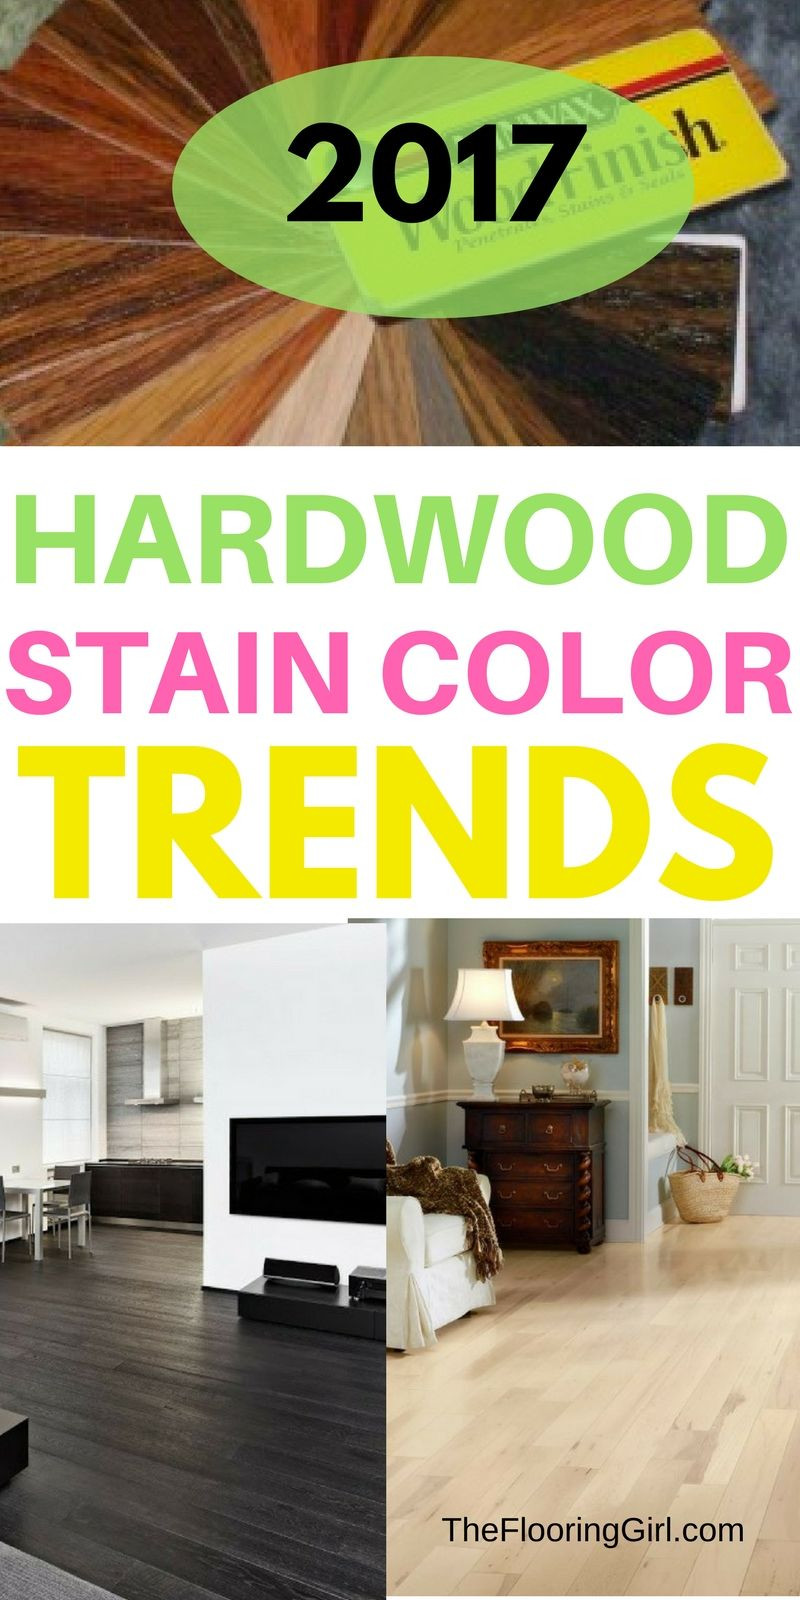 is it okay to have different color hardwood floors of hardwood flooring stain color trends 2018 more from the flooring inside hardwood flooring stain color trends for 2017 hardwood colors that are in style theflooringgirl com